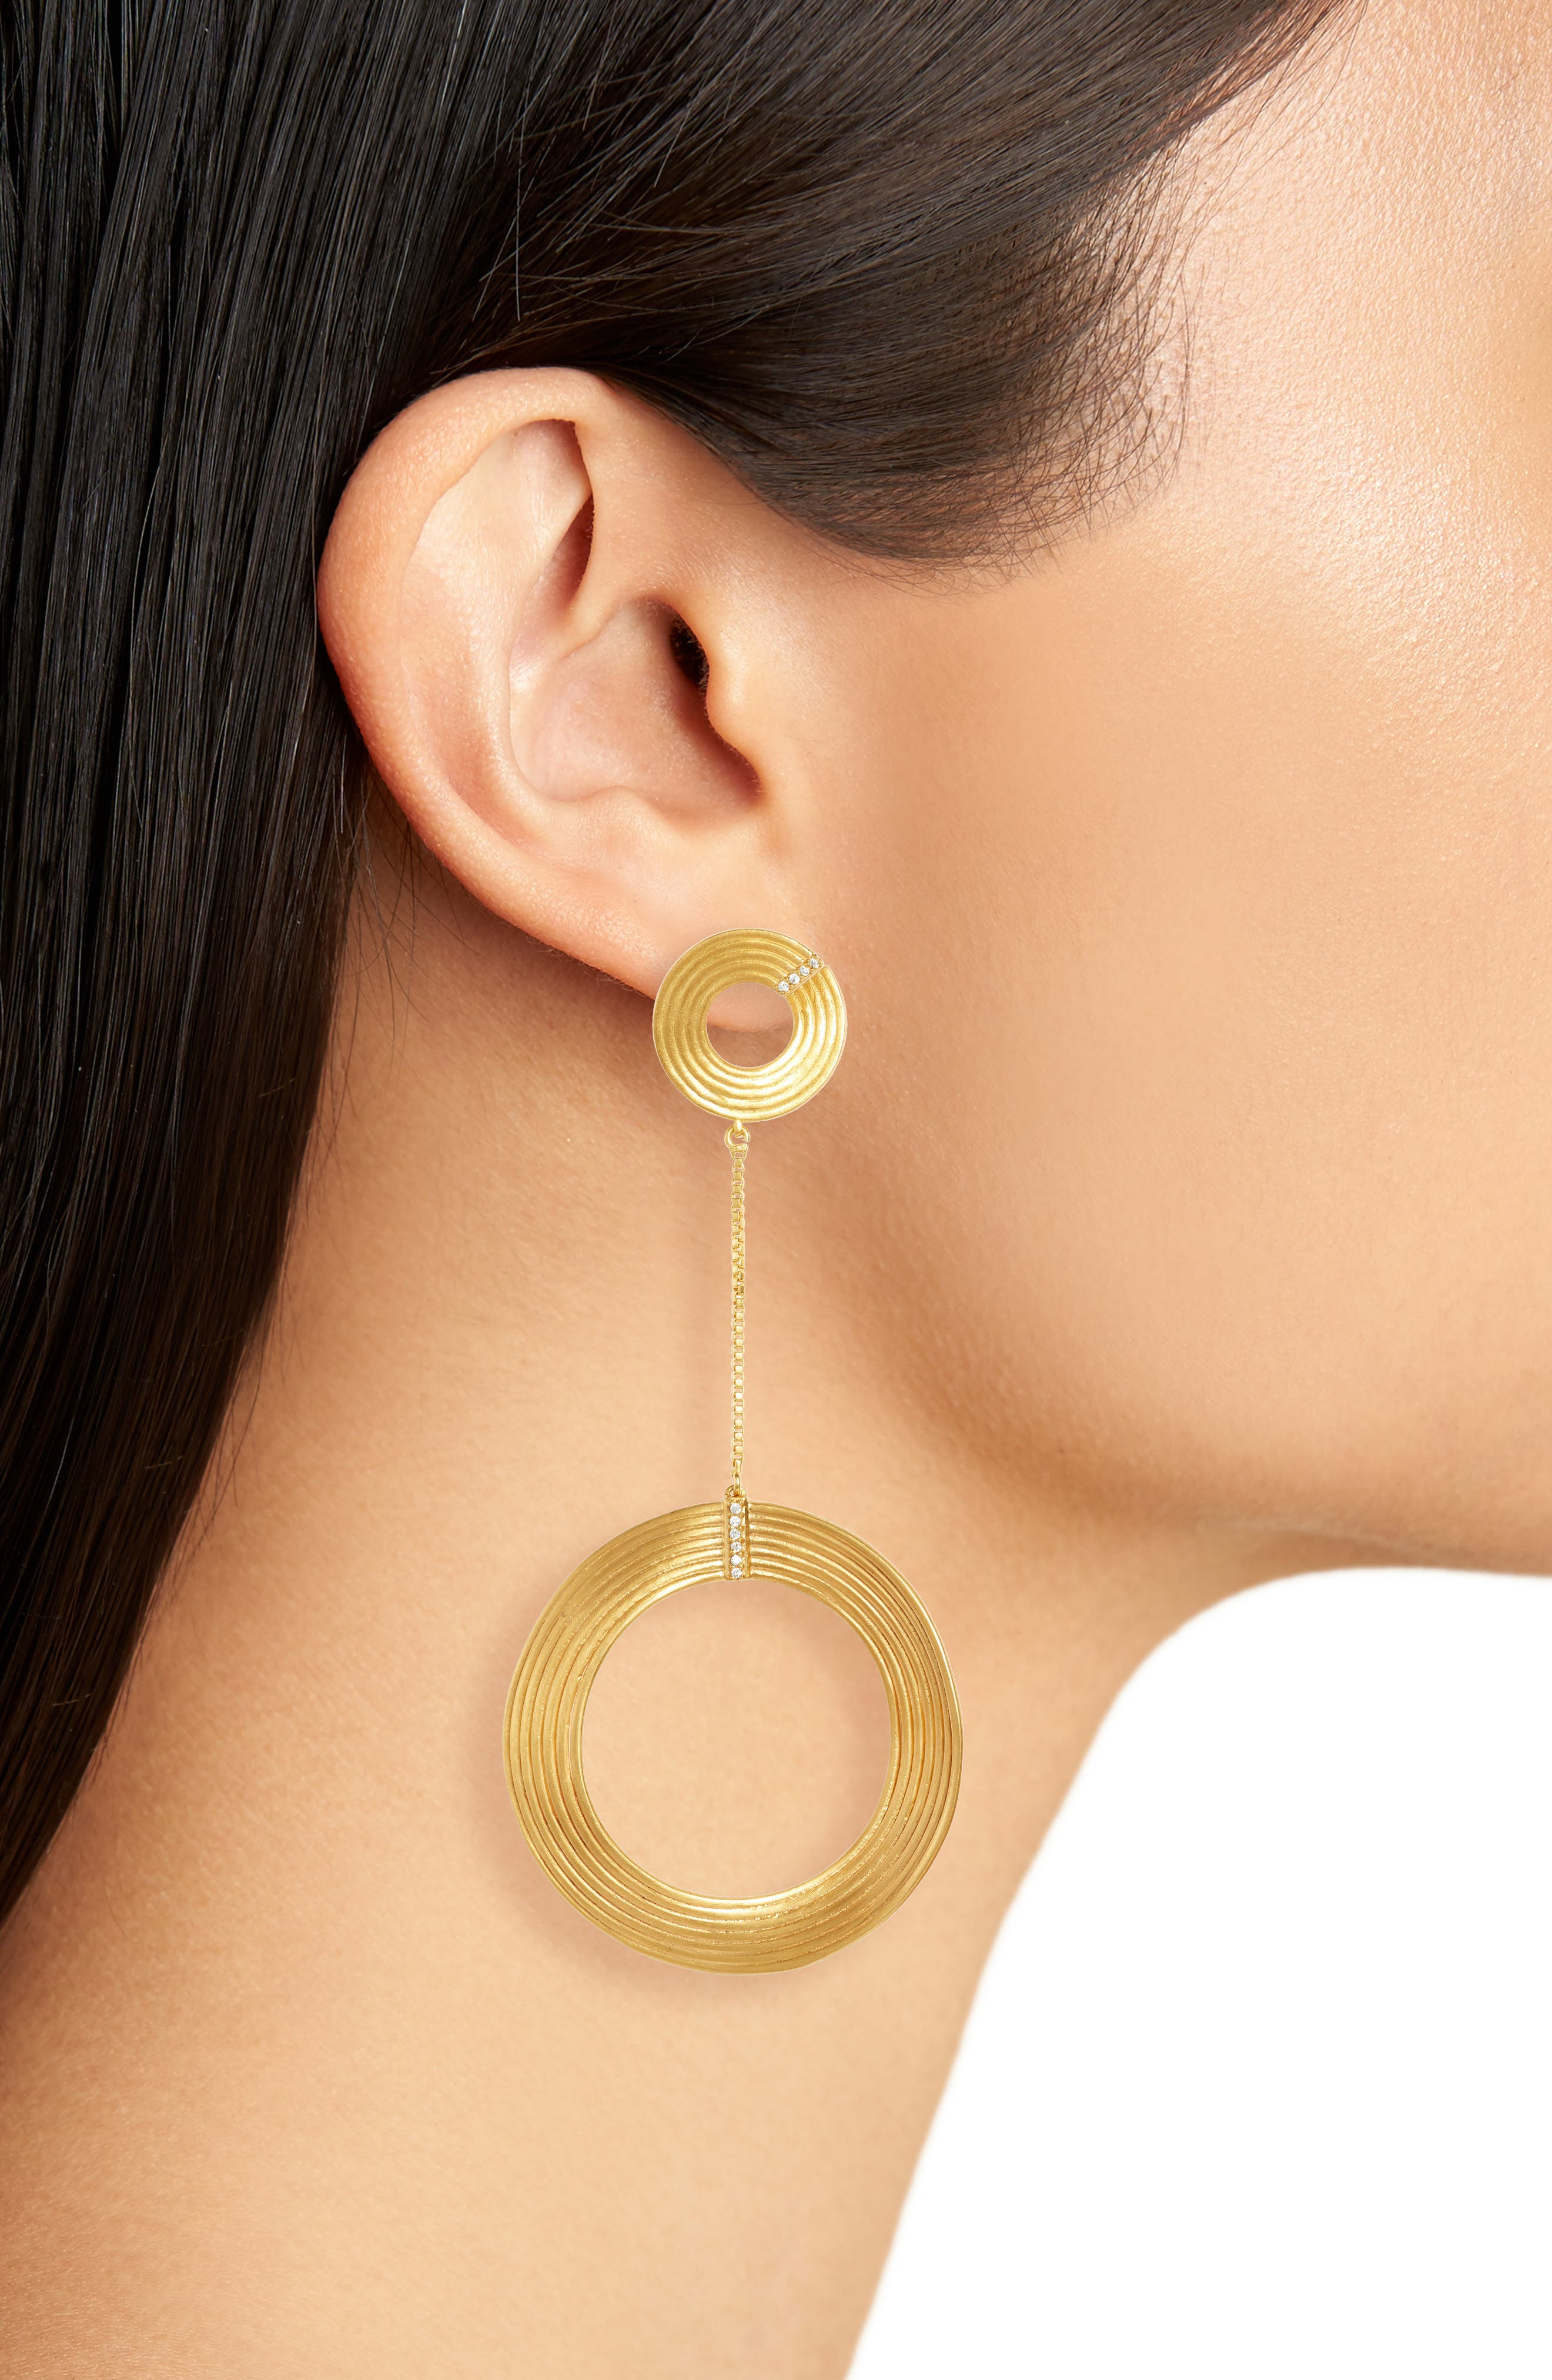 Zaha Drop Earrings,                             Alternate thumbnail 2, color,                             White Topaz/ Gold